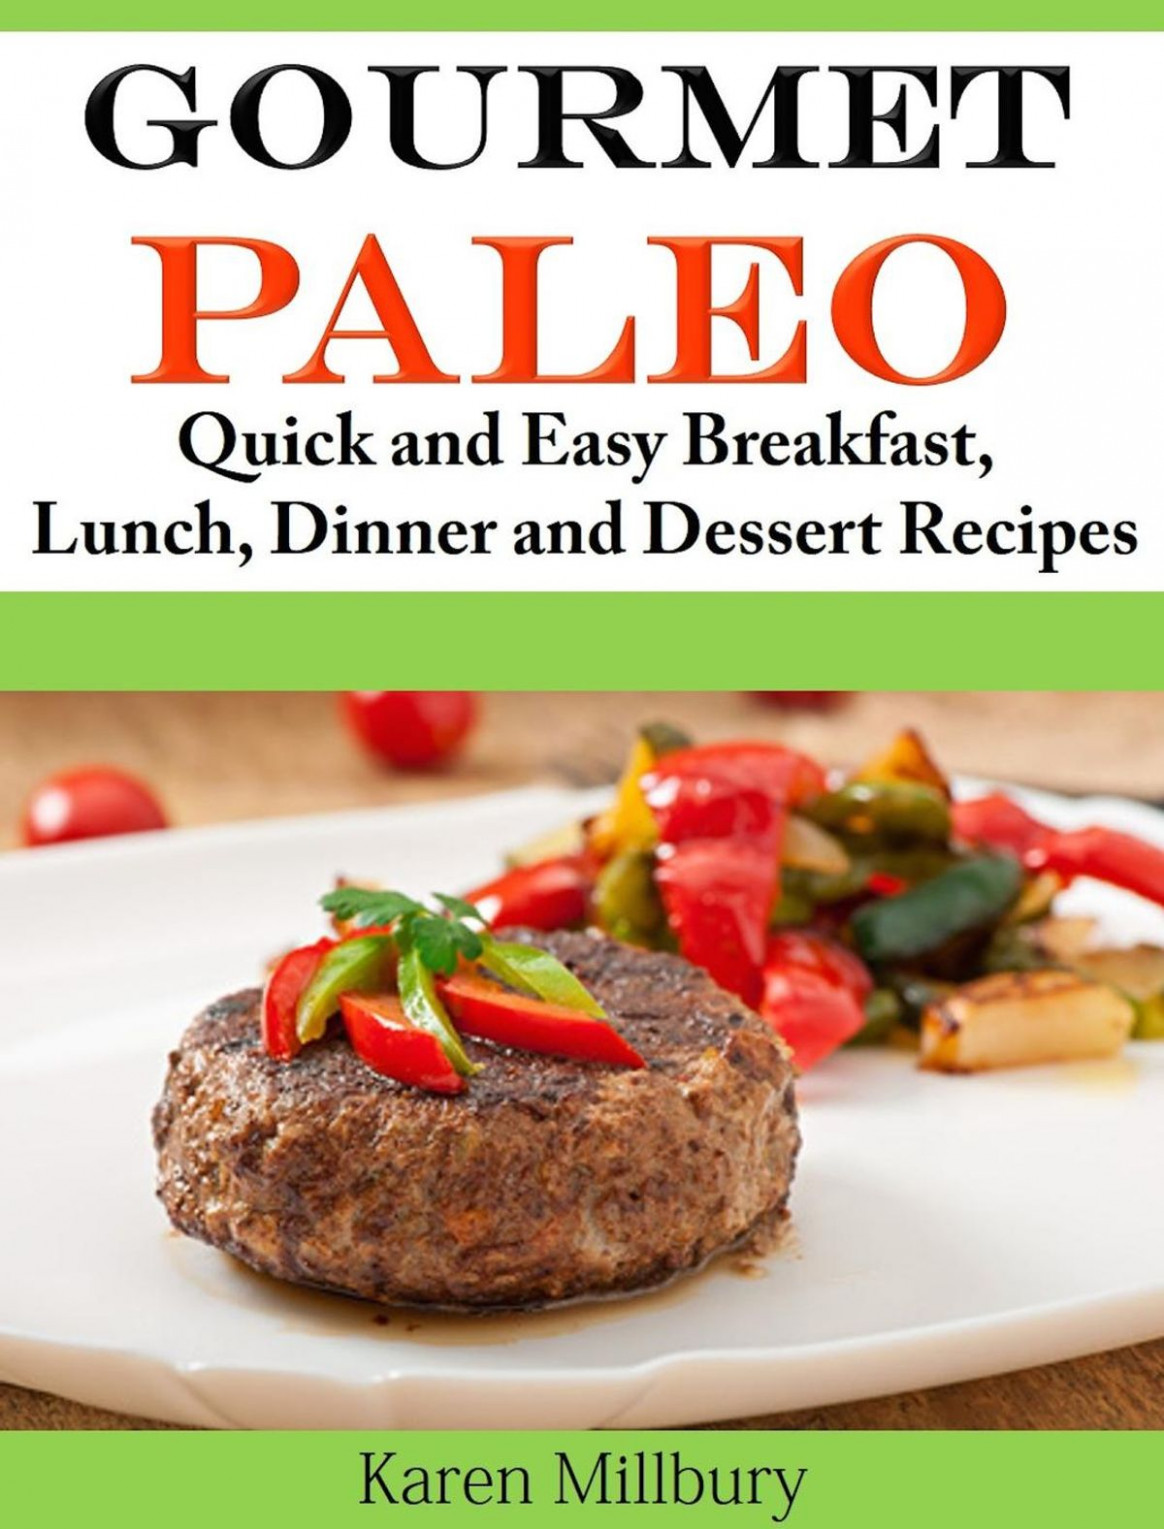 Gourmet Paleo Quick and Easy Breakfast, Lunch, Dinner and Dessert Recipes  ebook by Karen Millbury - Rakuten Kobo - dinner recipes gourmet